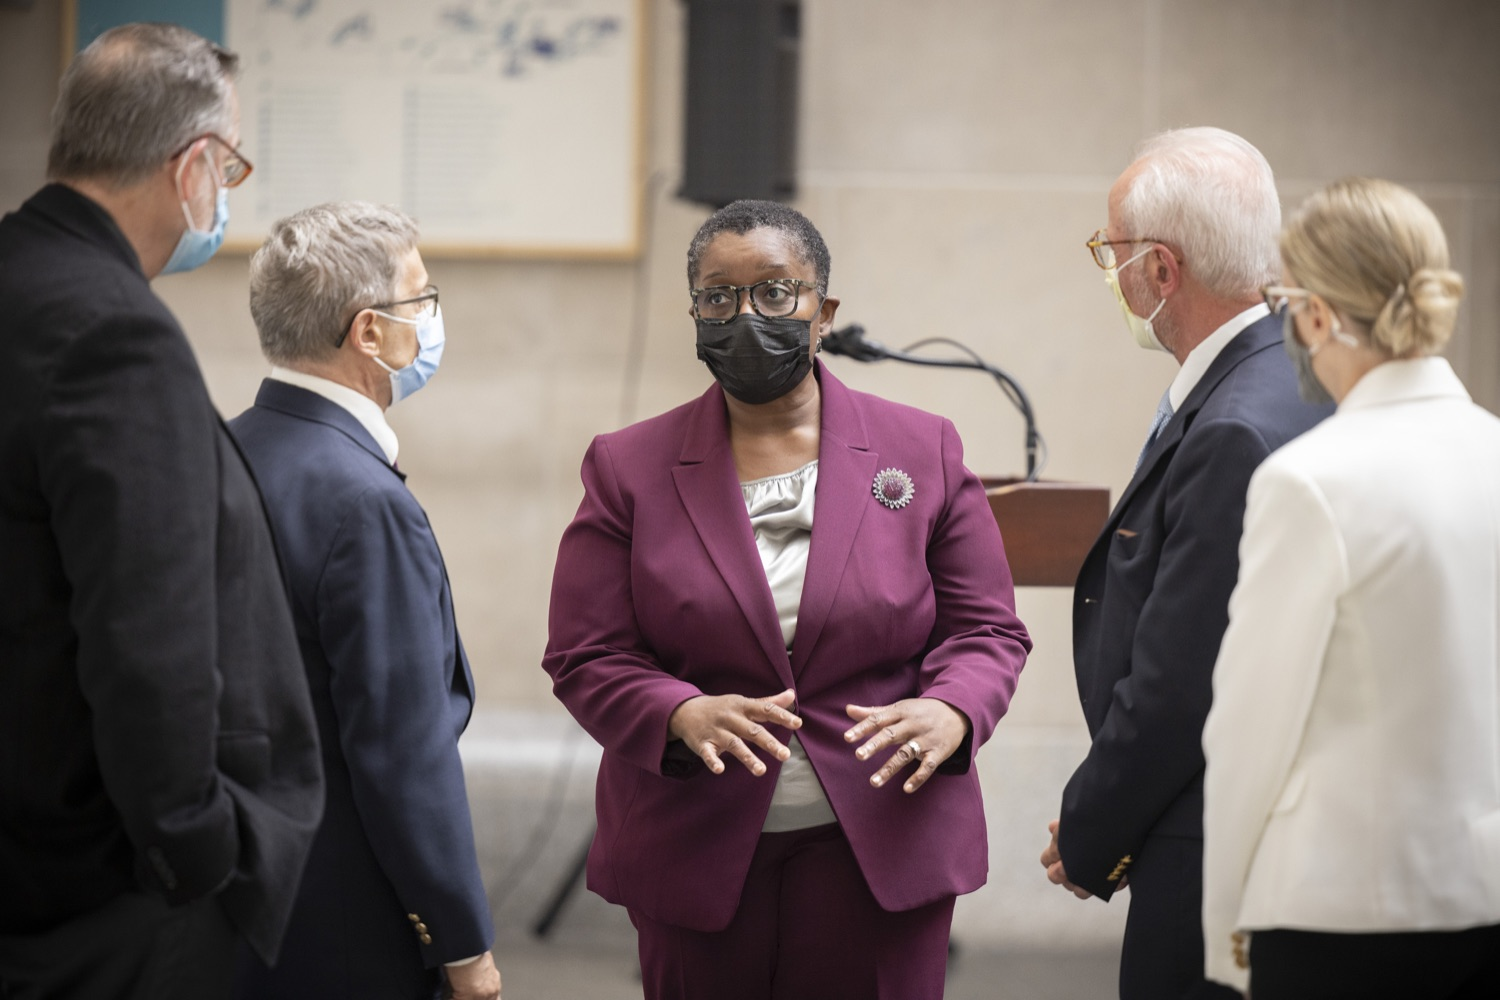 """<a href=""""https://filesource.wostreaming.net/commonwealthofpa/photo/18929_doh_blooddrive_dz_018.jpg"""" target=""""_blank"""">⇣Download Photo<br></a>Department of Health Acting Physician General Dr. Denise Johnson speaks with other attendees.  Department of Health Acting Physician General Dr. Denise Johnson joined representatives from Pennsylvania Blood Centers to discuss the importance of donating blood, as the number of volunteers who regularly donate blood has dramatically decreased due to the ongoing COVID-19 pandemic.  Harrisburg, PA - August 19, 2021"""